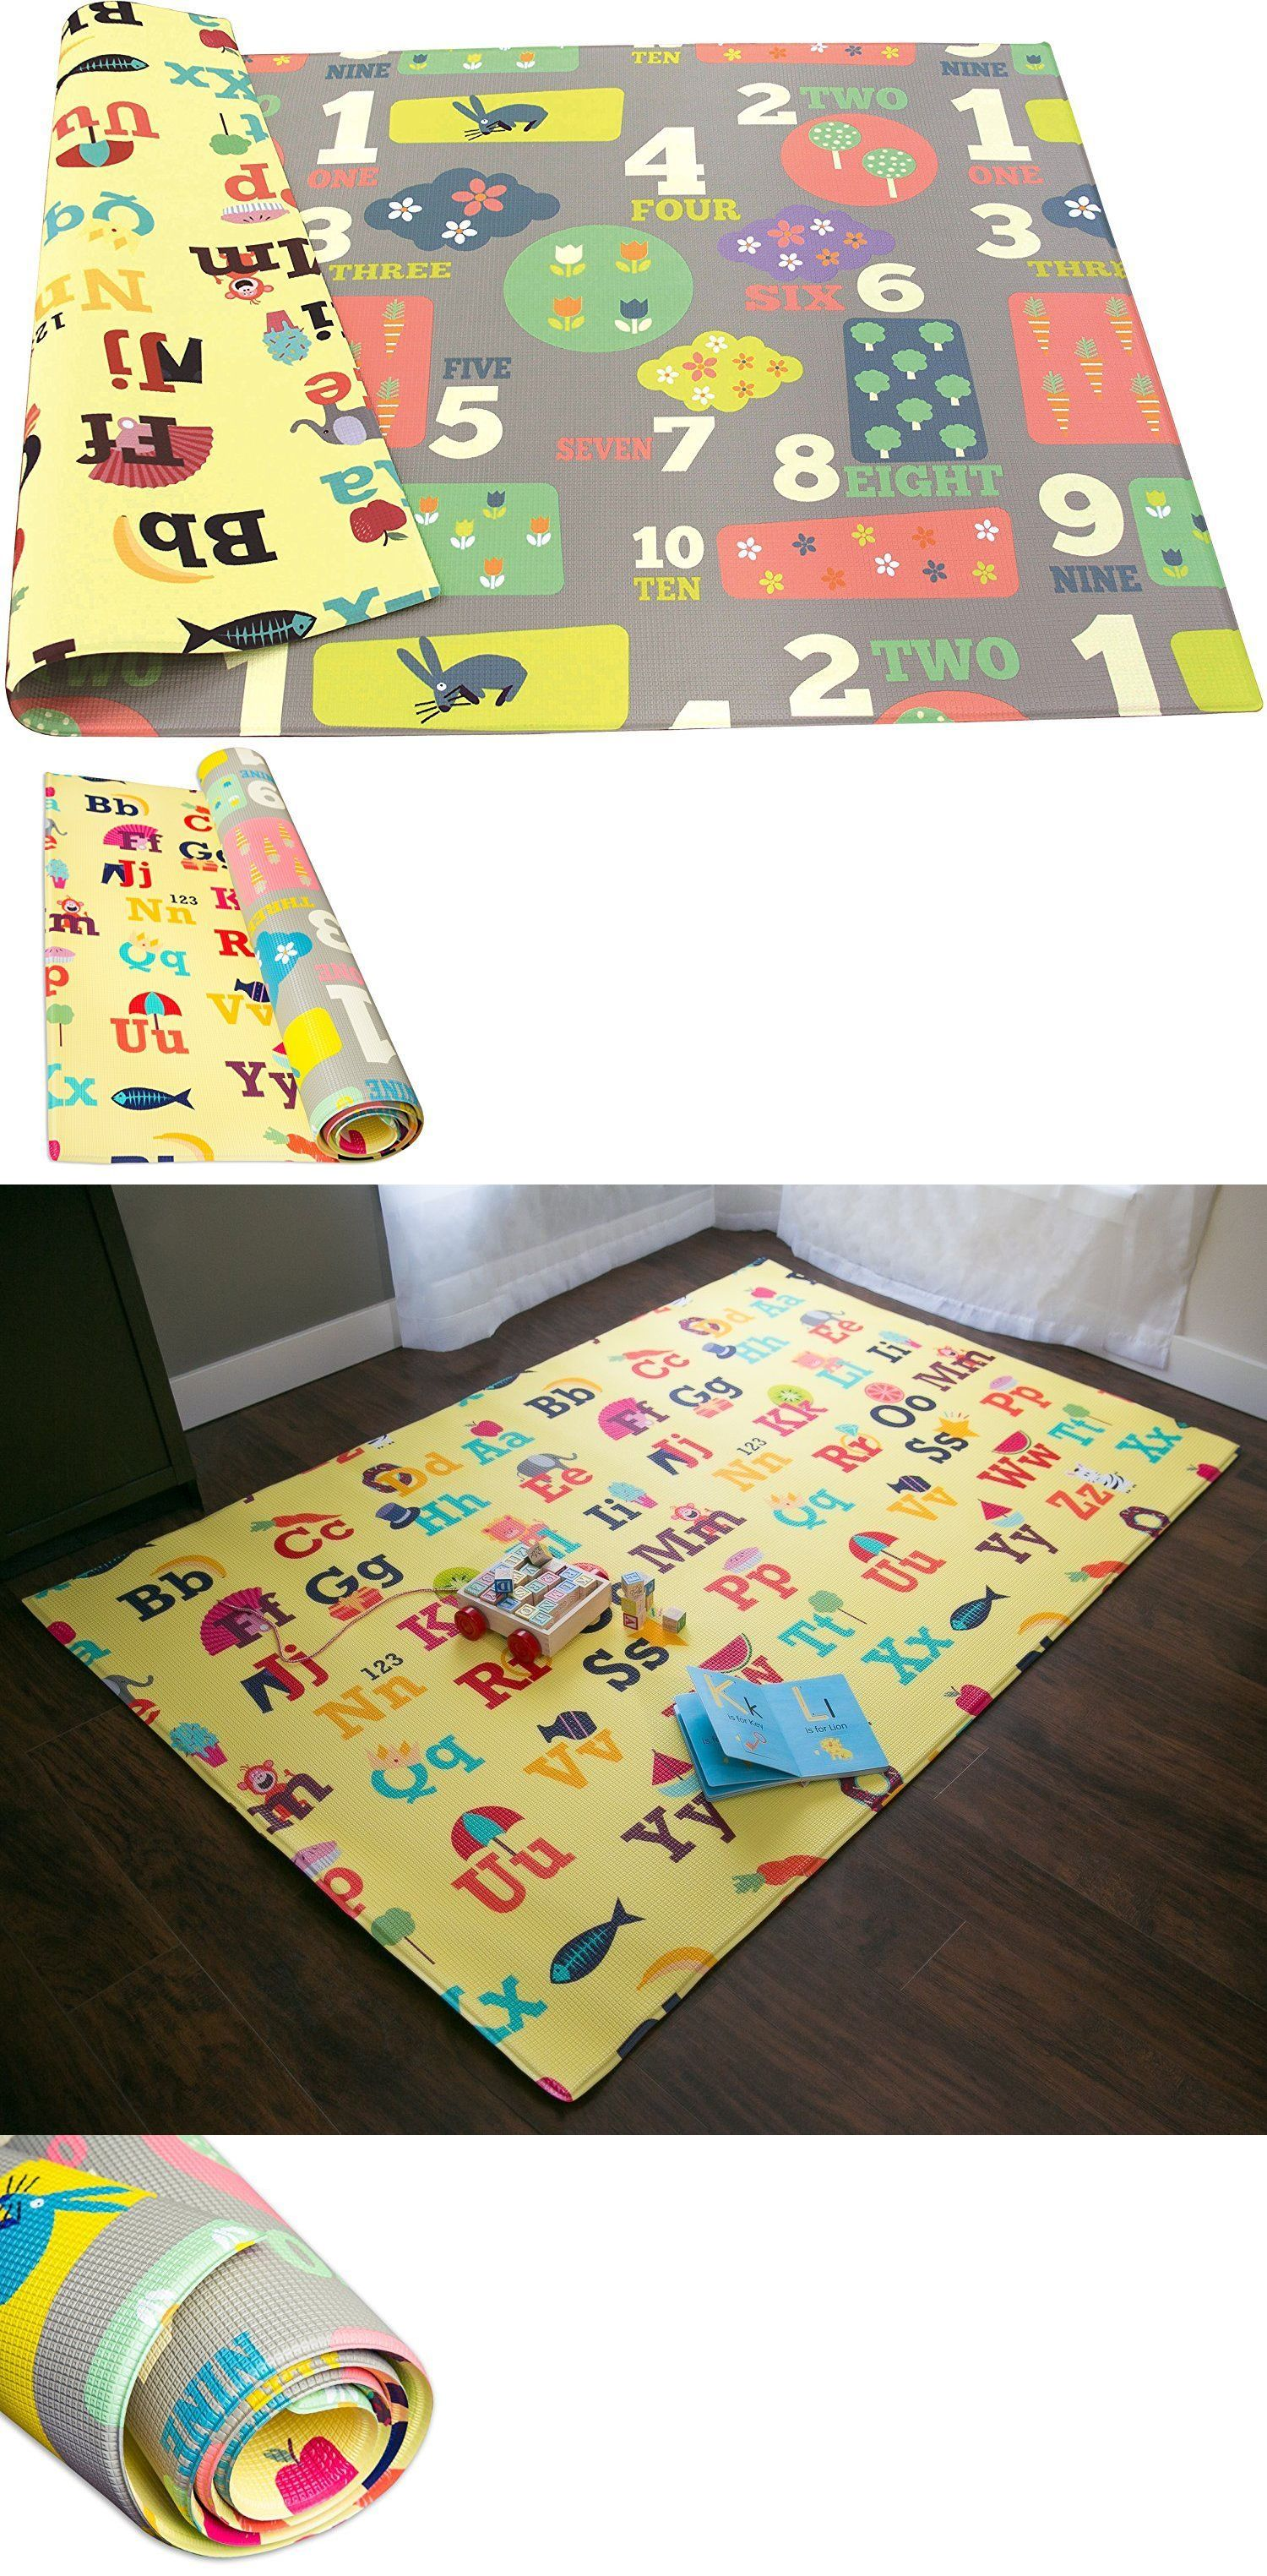 catalog co product jworld jsp ltd mongni cat and for kids mats industry babies mat play view large floor